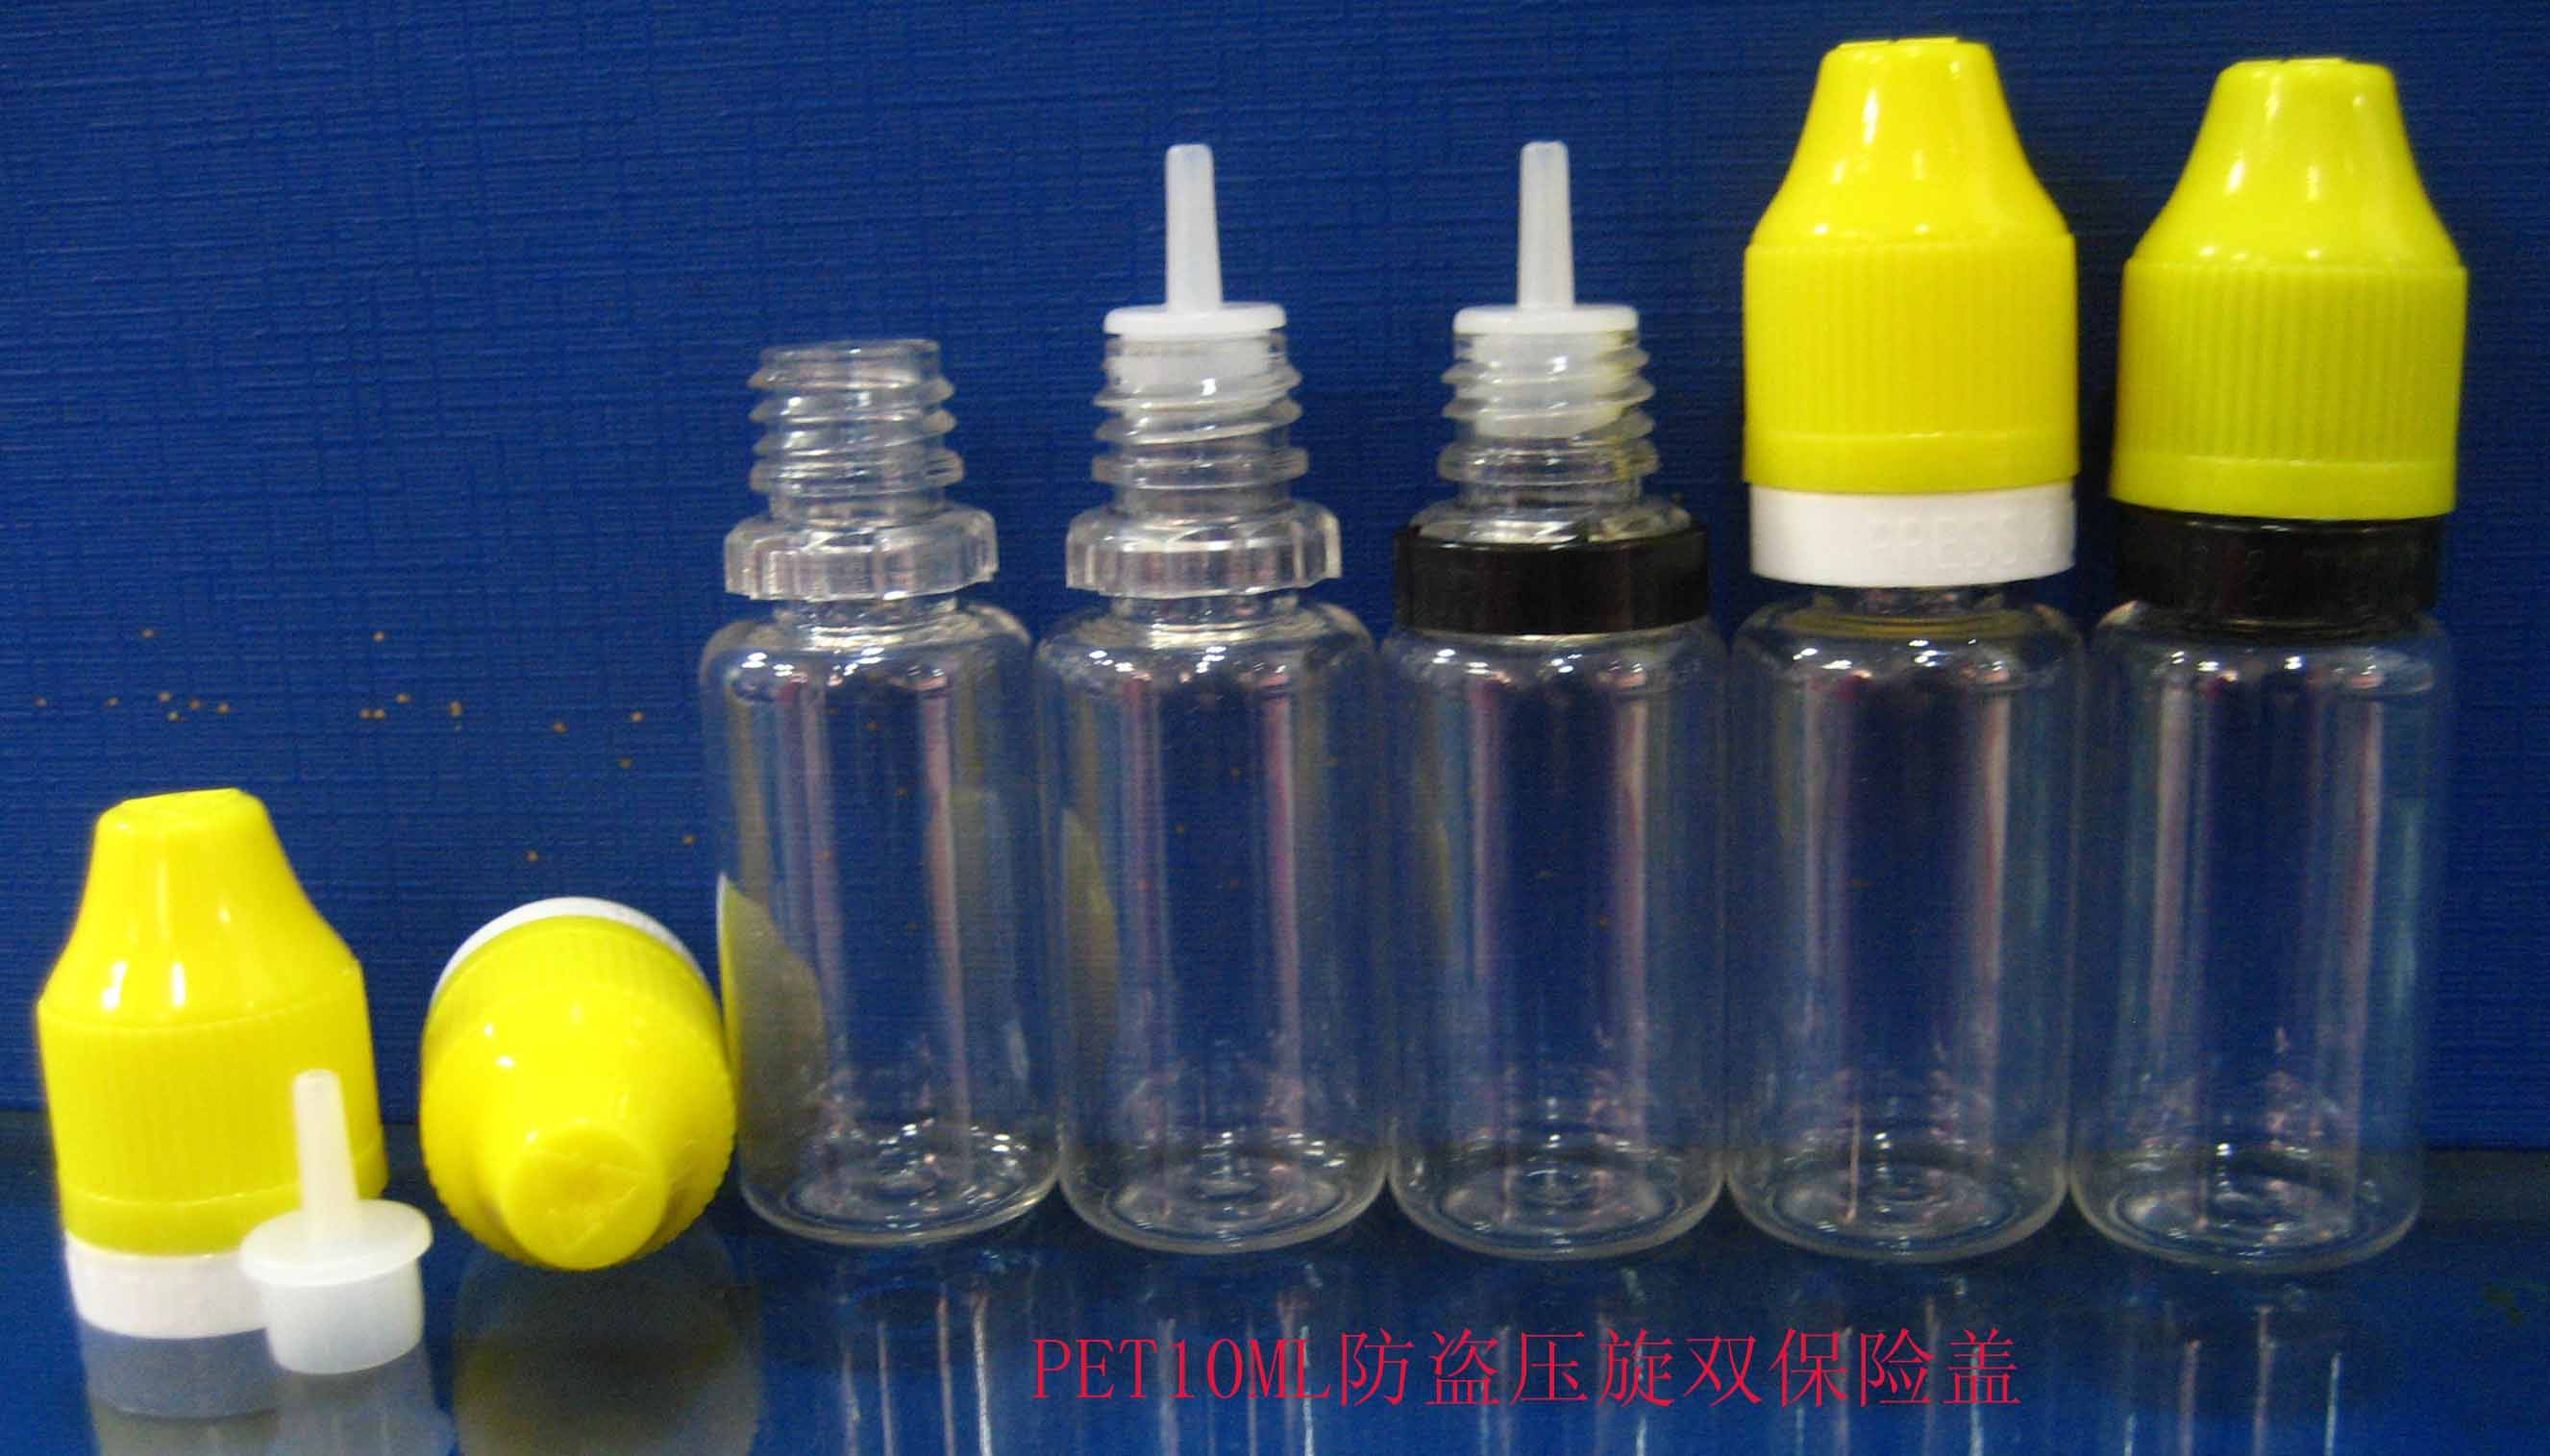 amber glass e liquid bottle with yellow cap different models empty bottle in stock